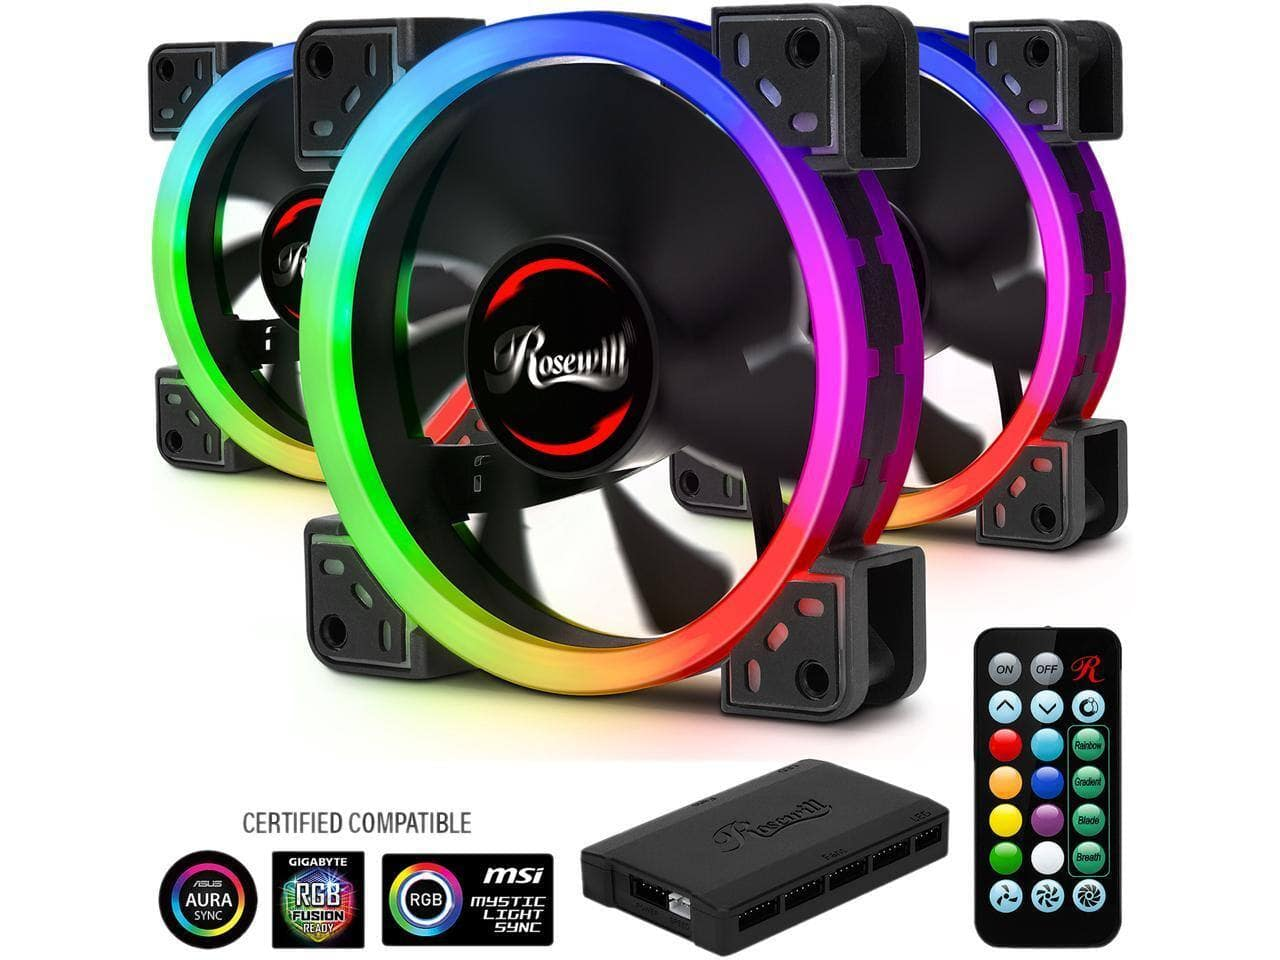 Rosewill RABF-131409 140mm Computer Case Cooling Fan w/ LP4 Adapter $6.99, 3-Pack Rosewill RGBF-S12001 120mm Dual Ring Addressable RGB Case Fan Hub Set $34, More + Free Shipping